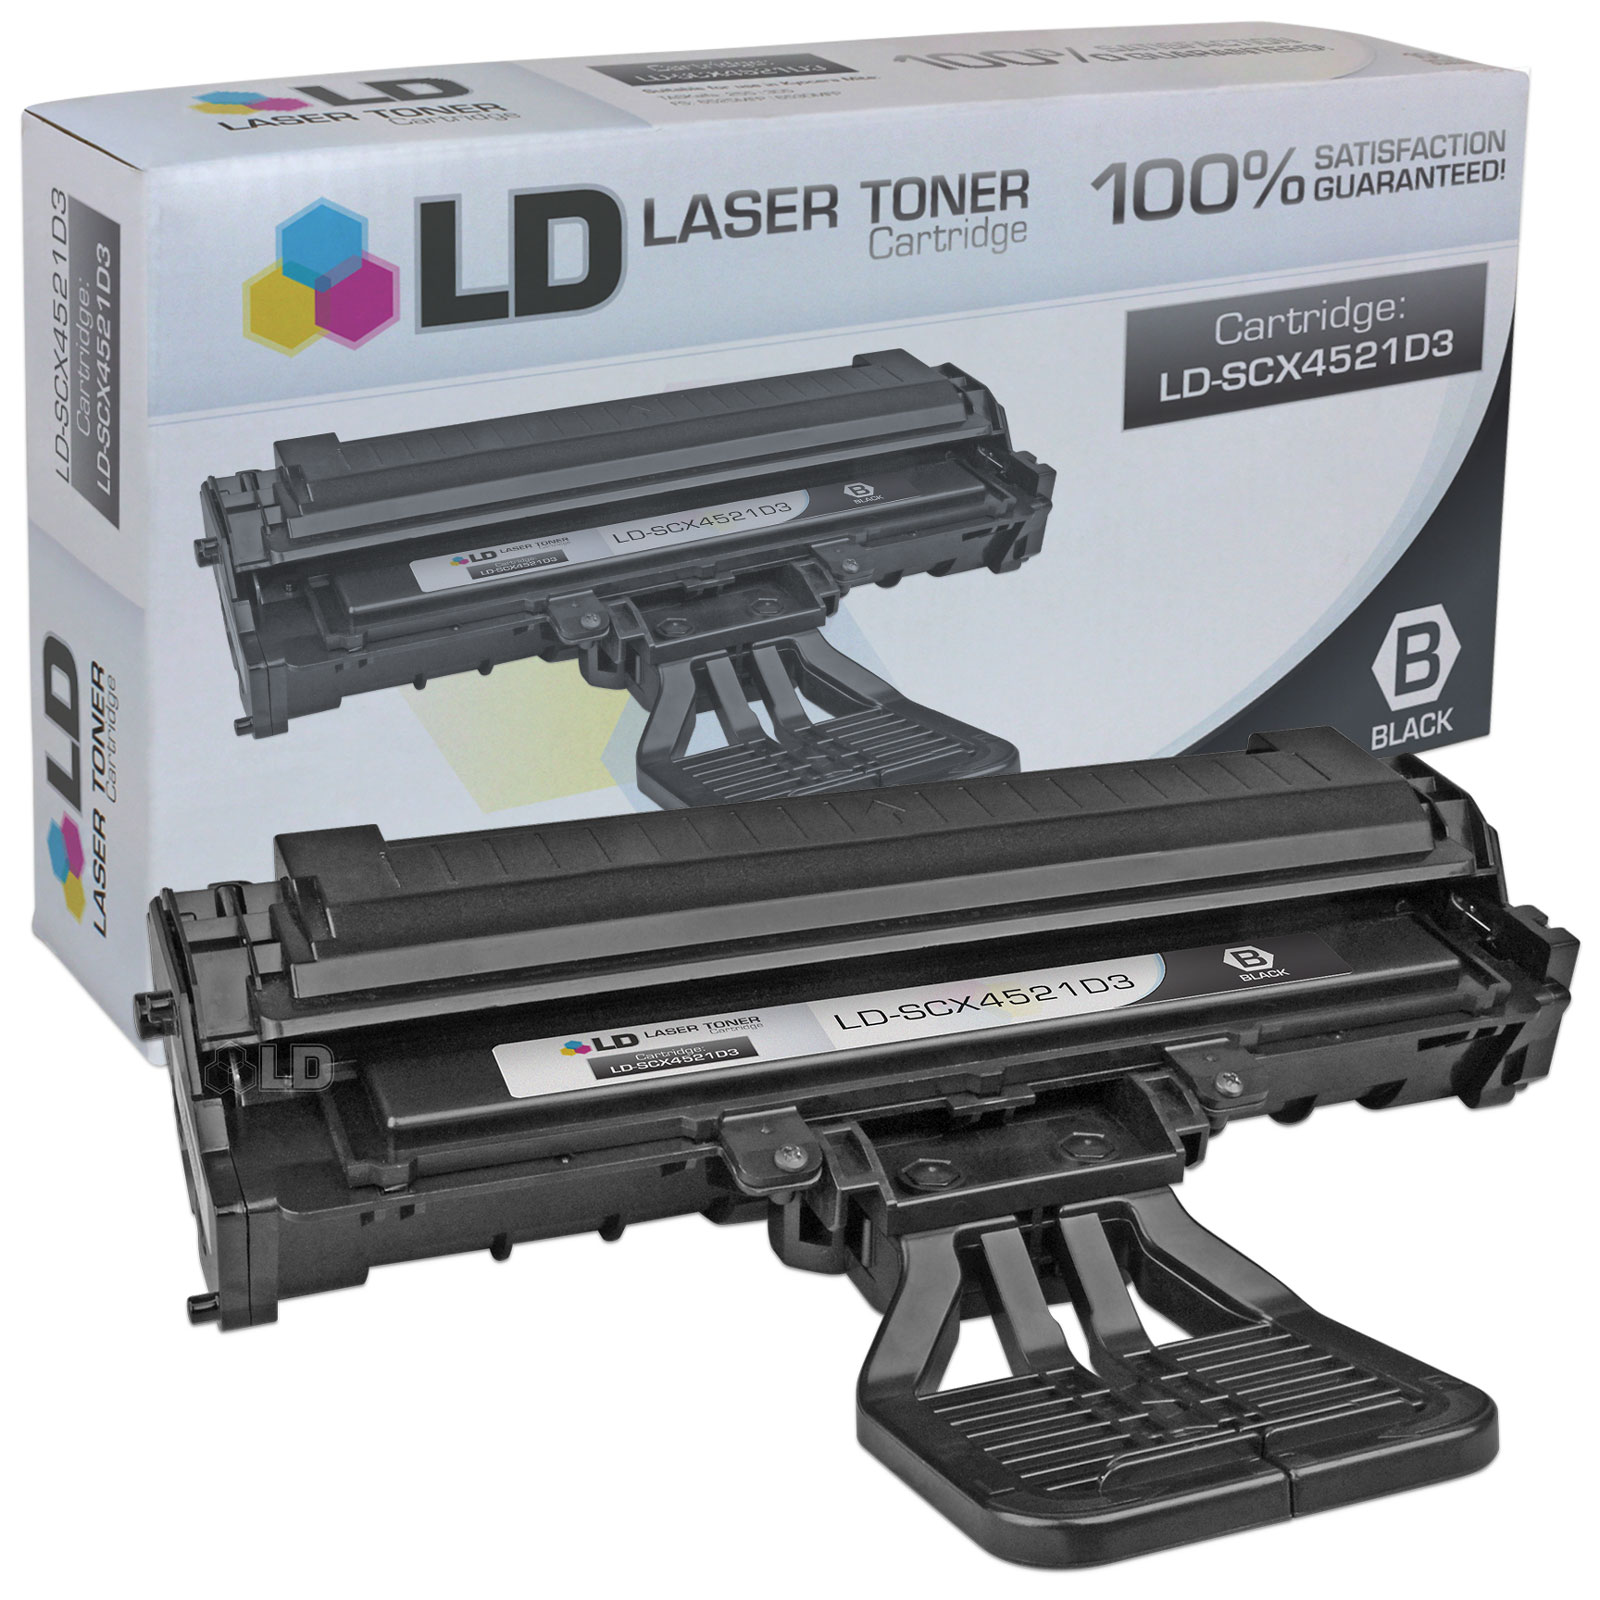 LD Compatible Replacement for Samsung SCX-4521D3 Black Laser Toner Cartridge for use in Samsung SCX-4321, SCX-4521, SCX-4521F, SCX-4521FG, and SCX-4521FR Printers